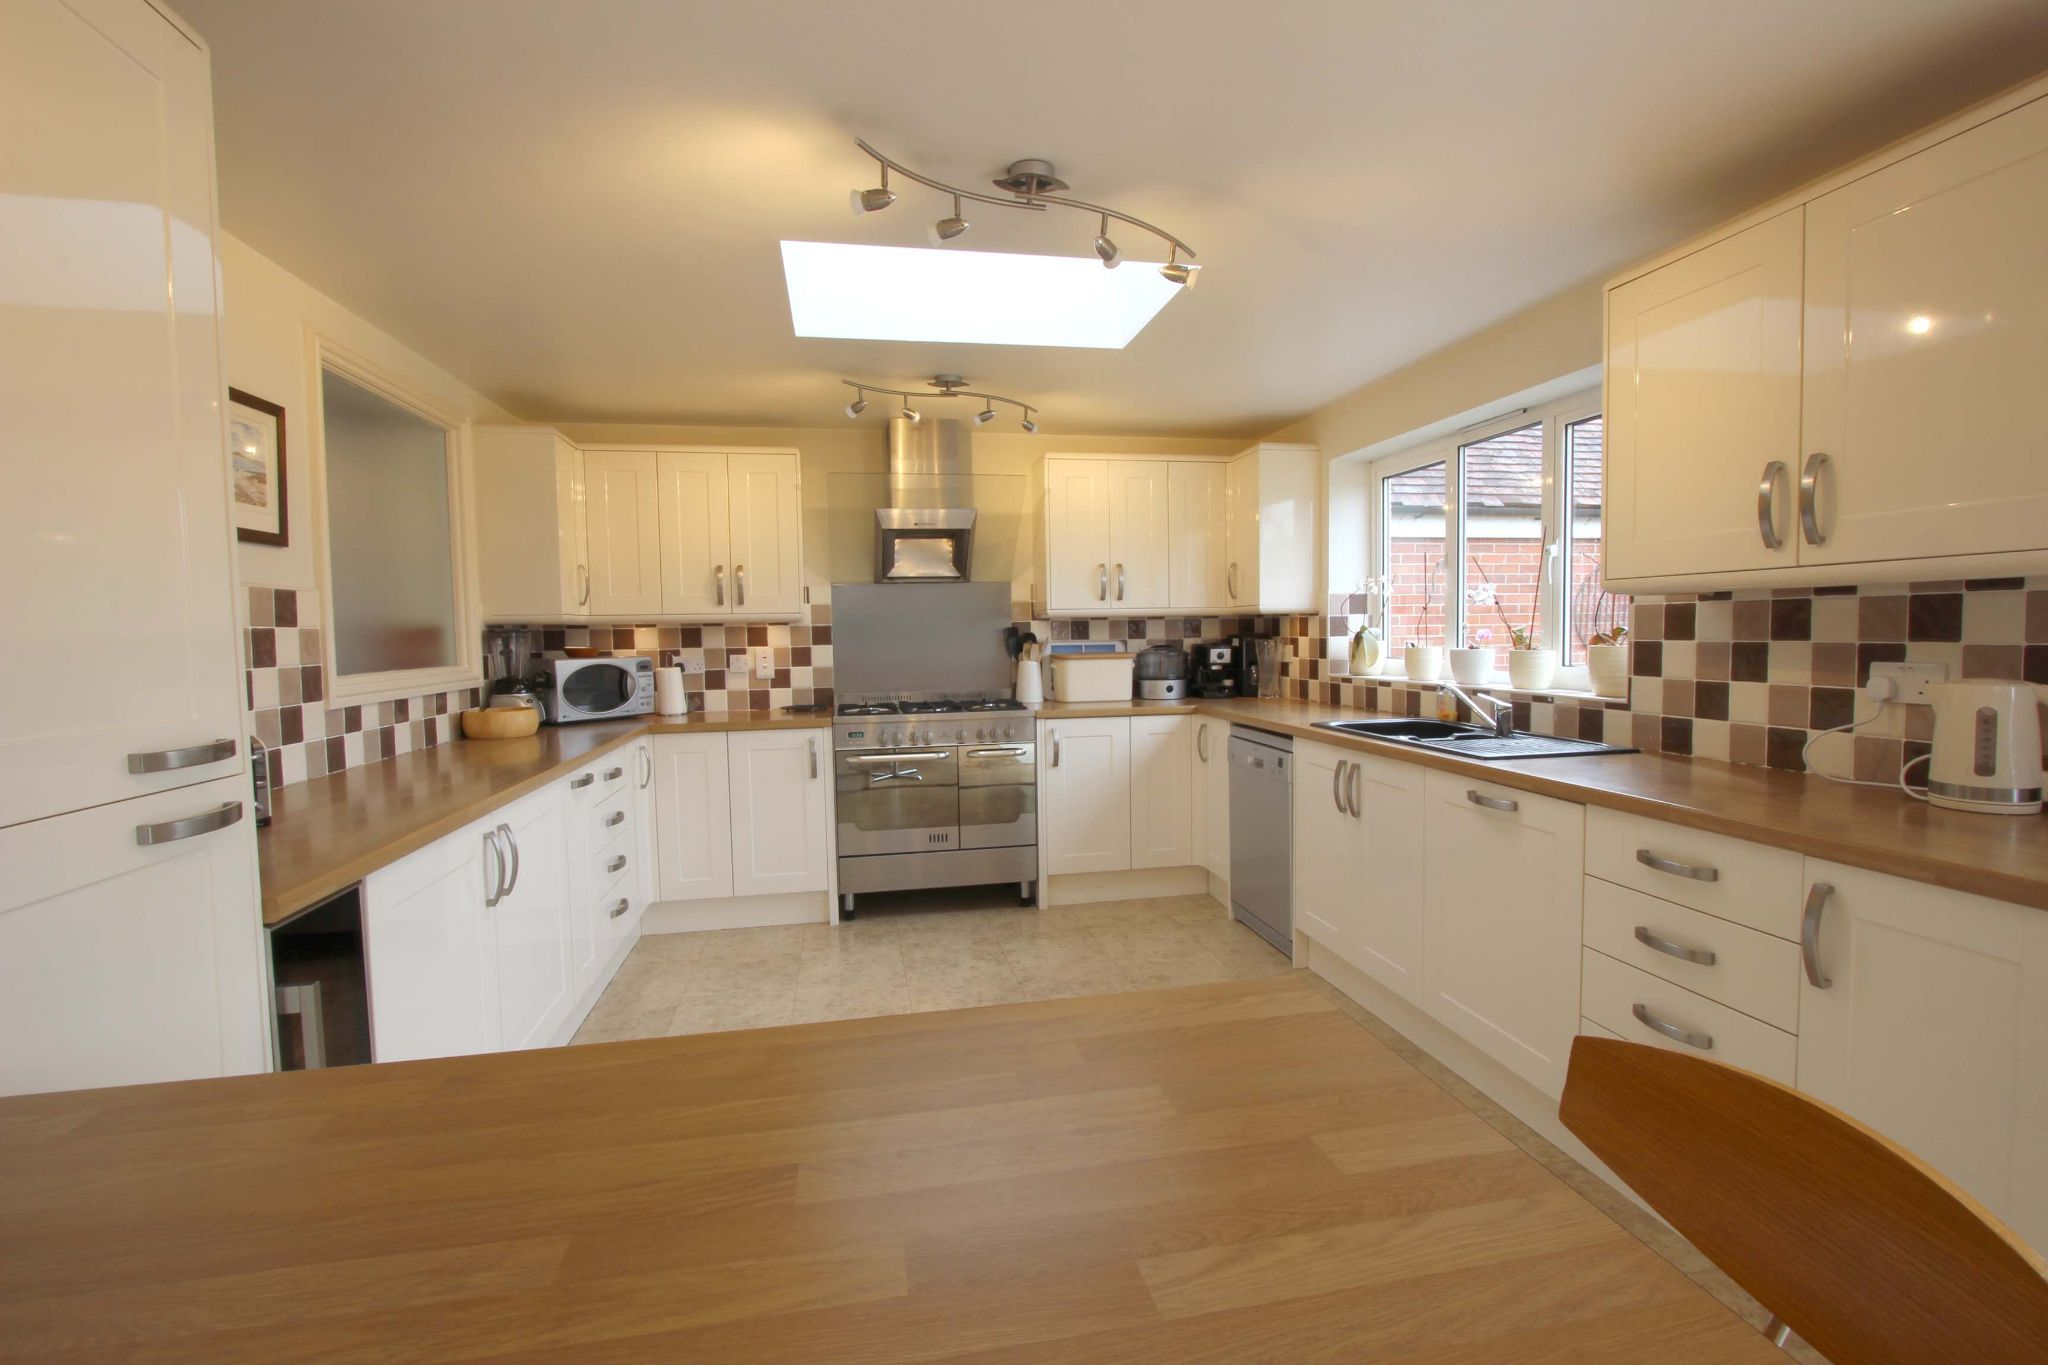 4 bedroom chalet house SSTC in Potters Bar - Photograph 5